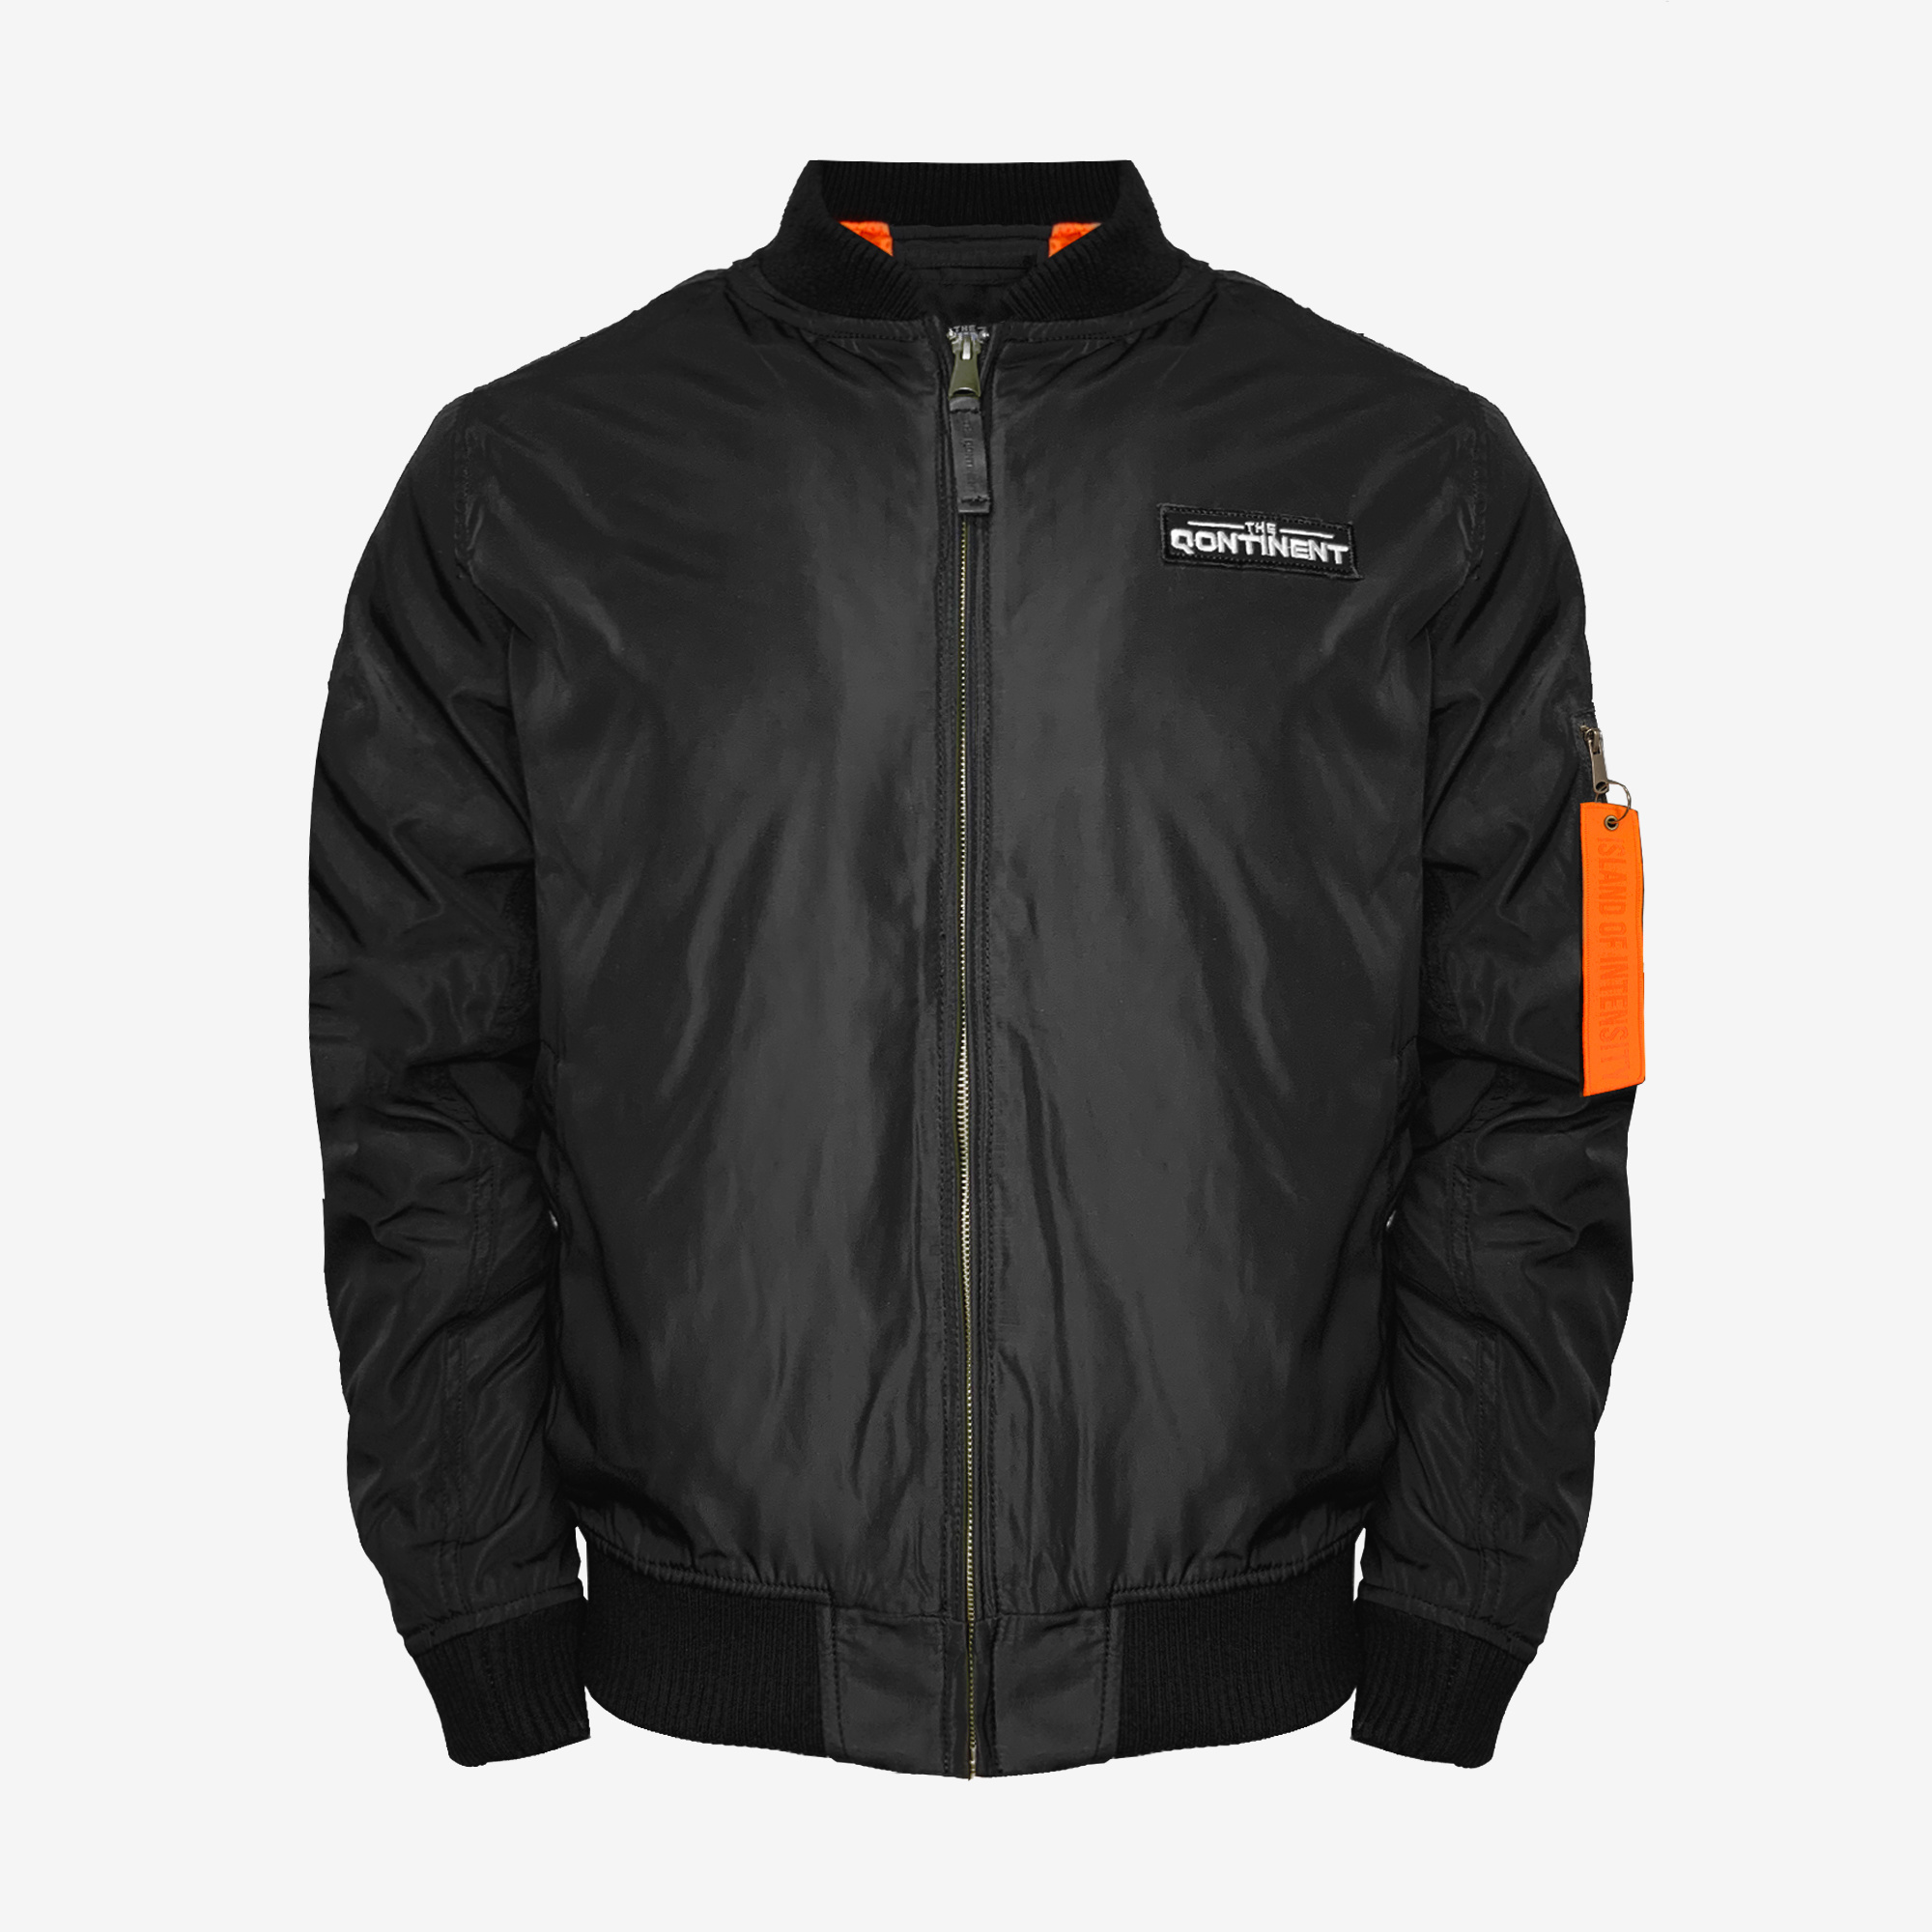 The Qontinent - 2019 Official Bomber Jacket